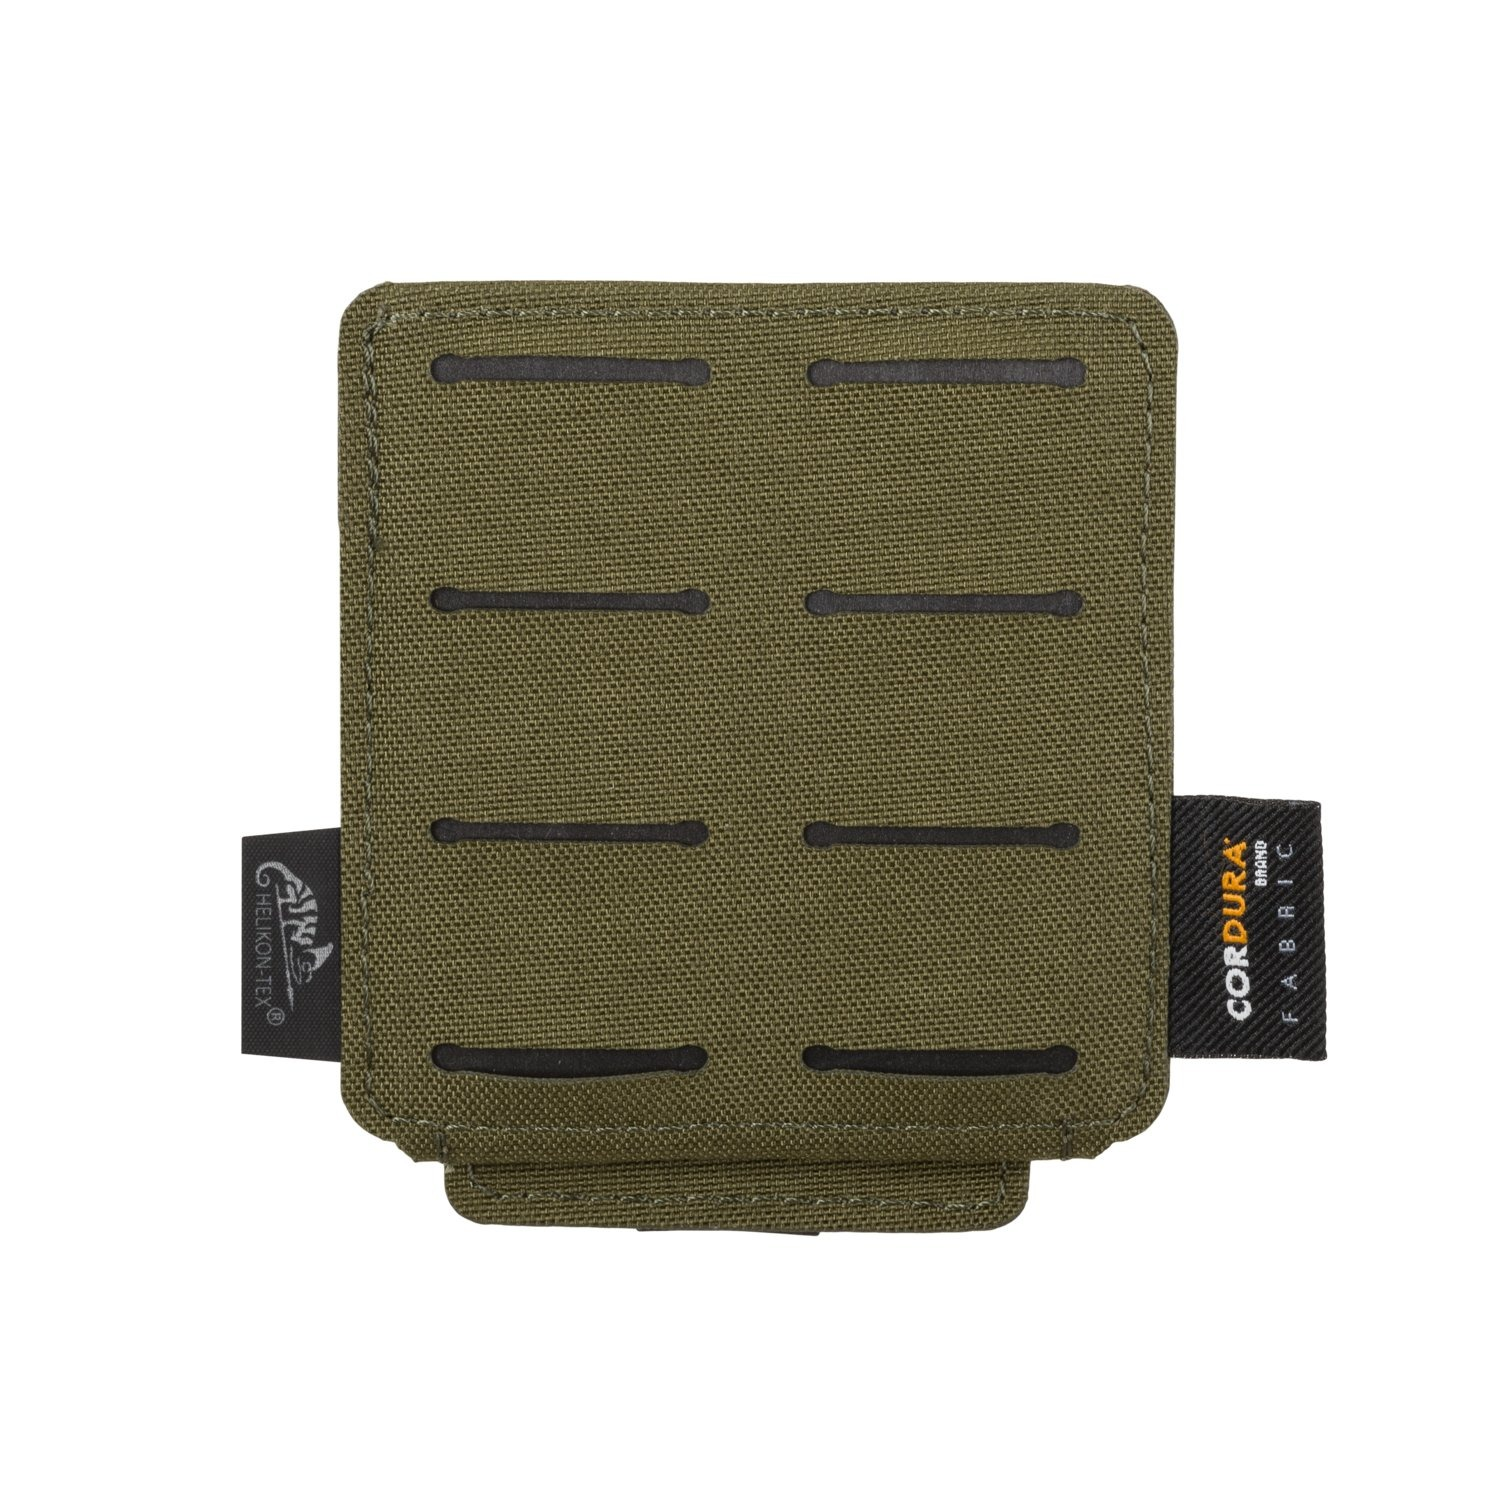 Image of Adapter bma helikon belt molle adapter 2 - cordura - olive green - one size (in-bm2-cd-02)